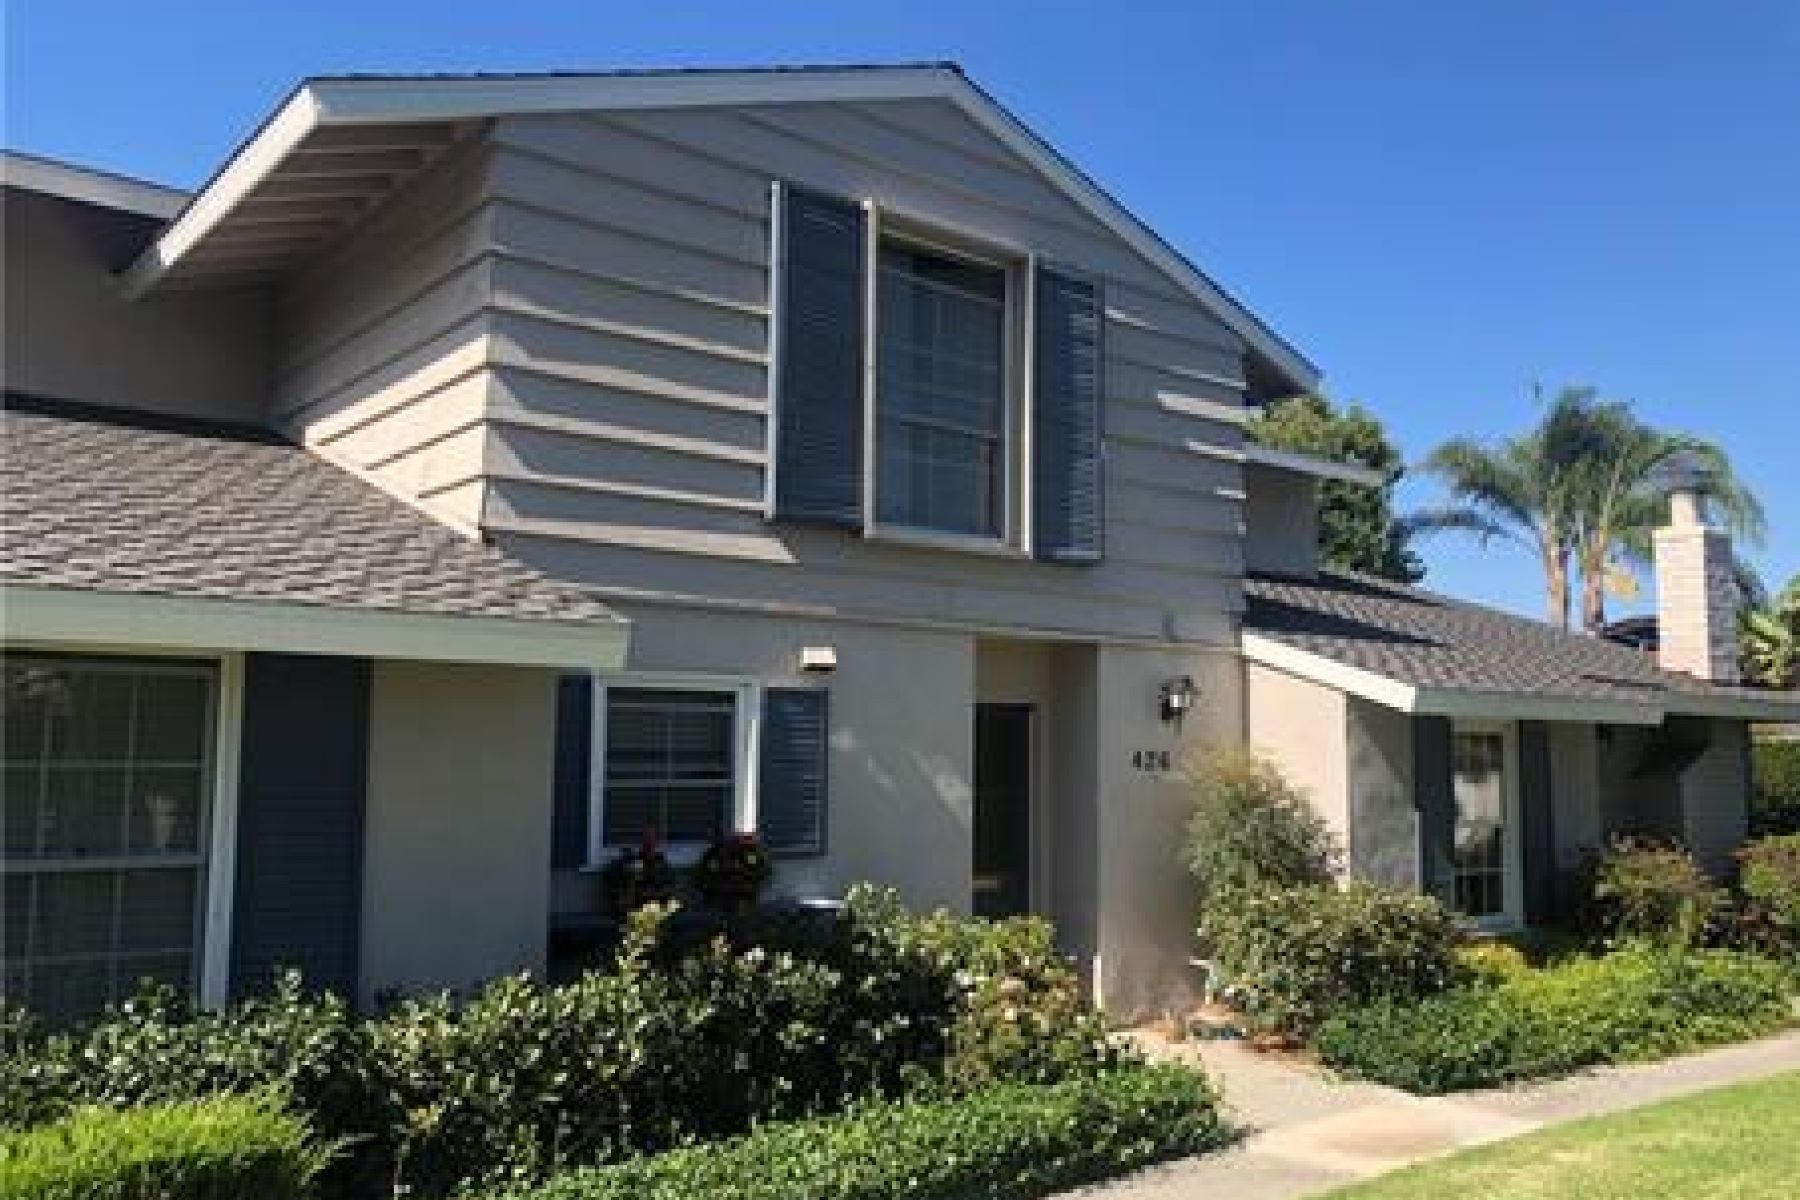 Single Family Homes for Sale at 426 Emerson Street Costa Mesa, California 92627 United States